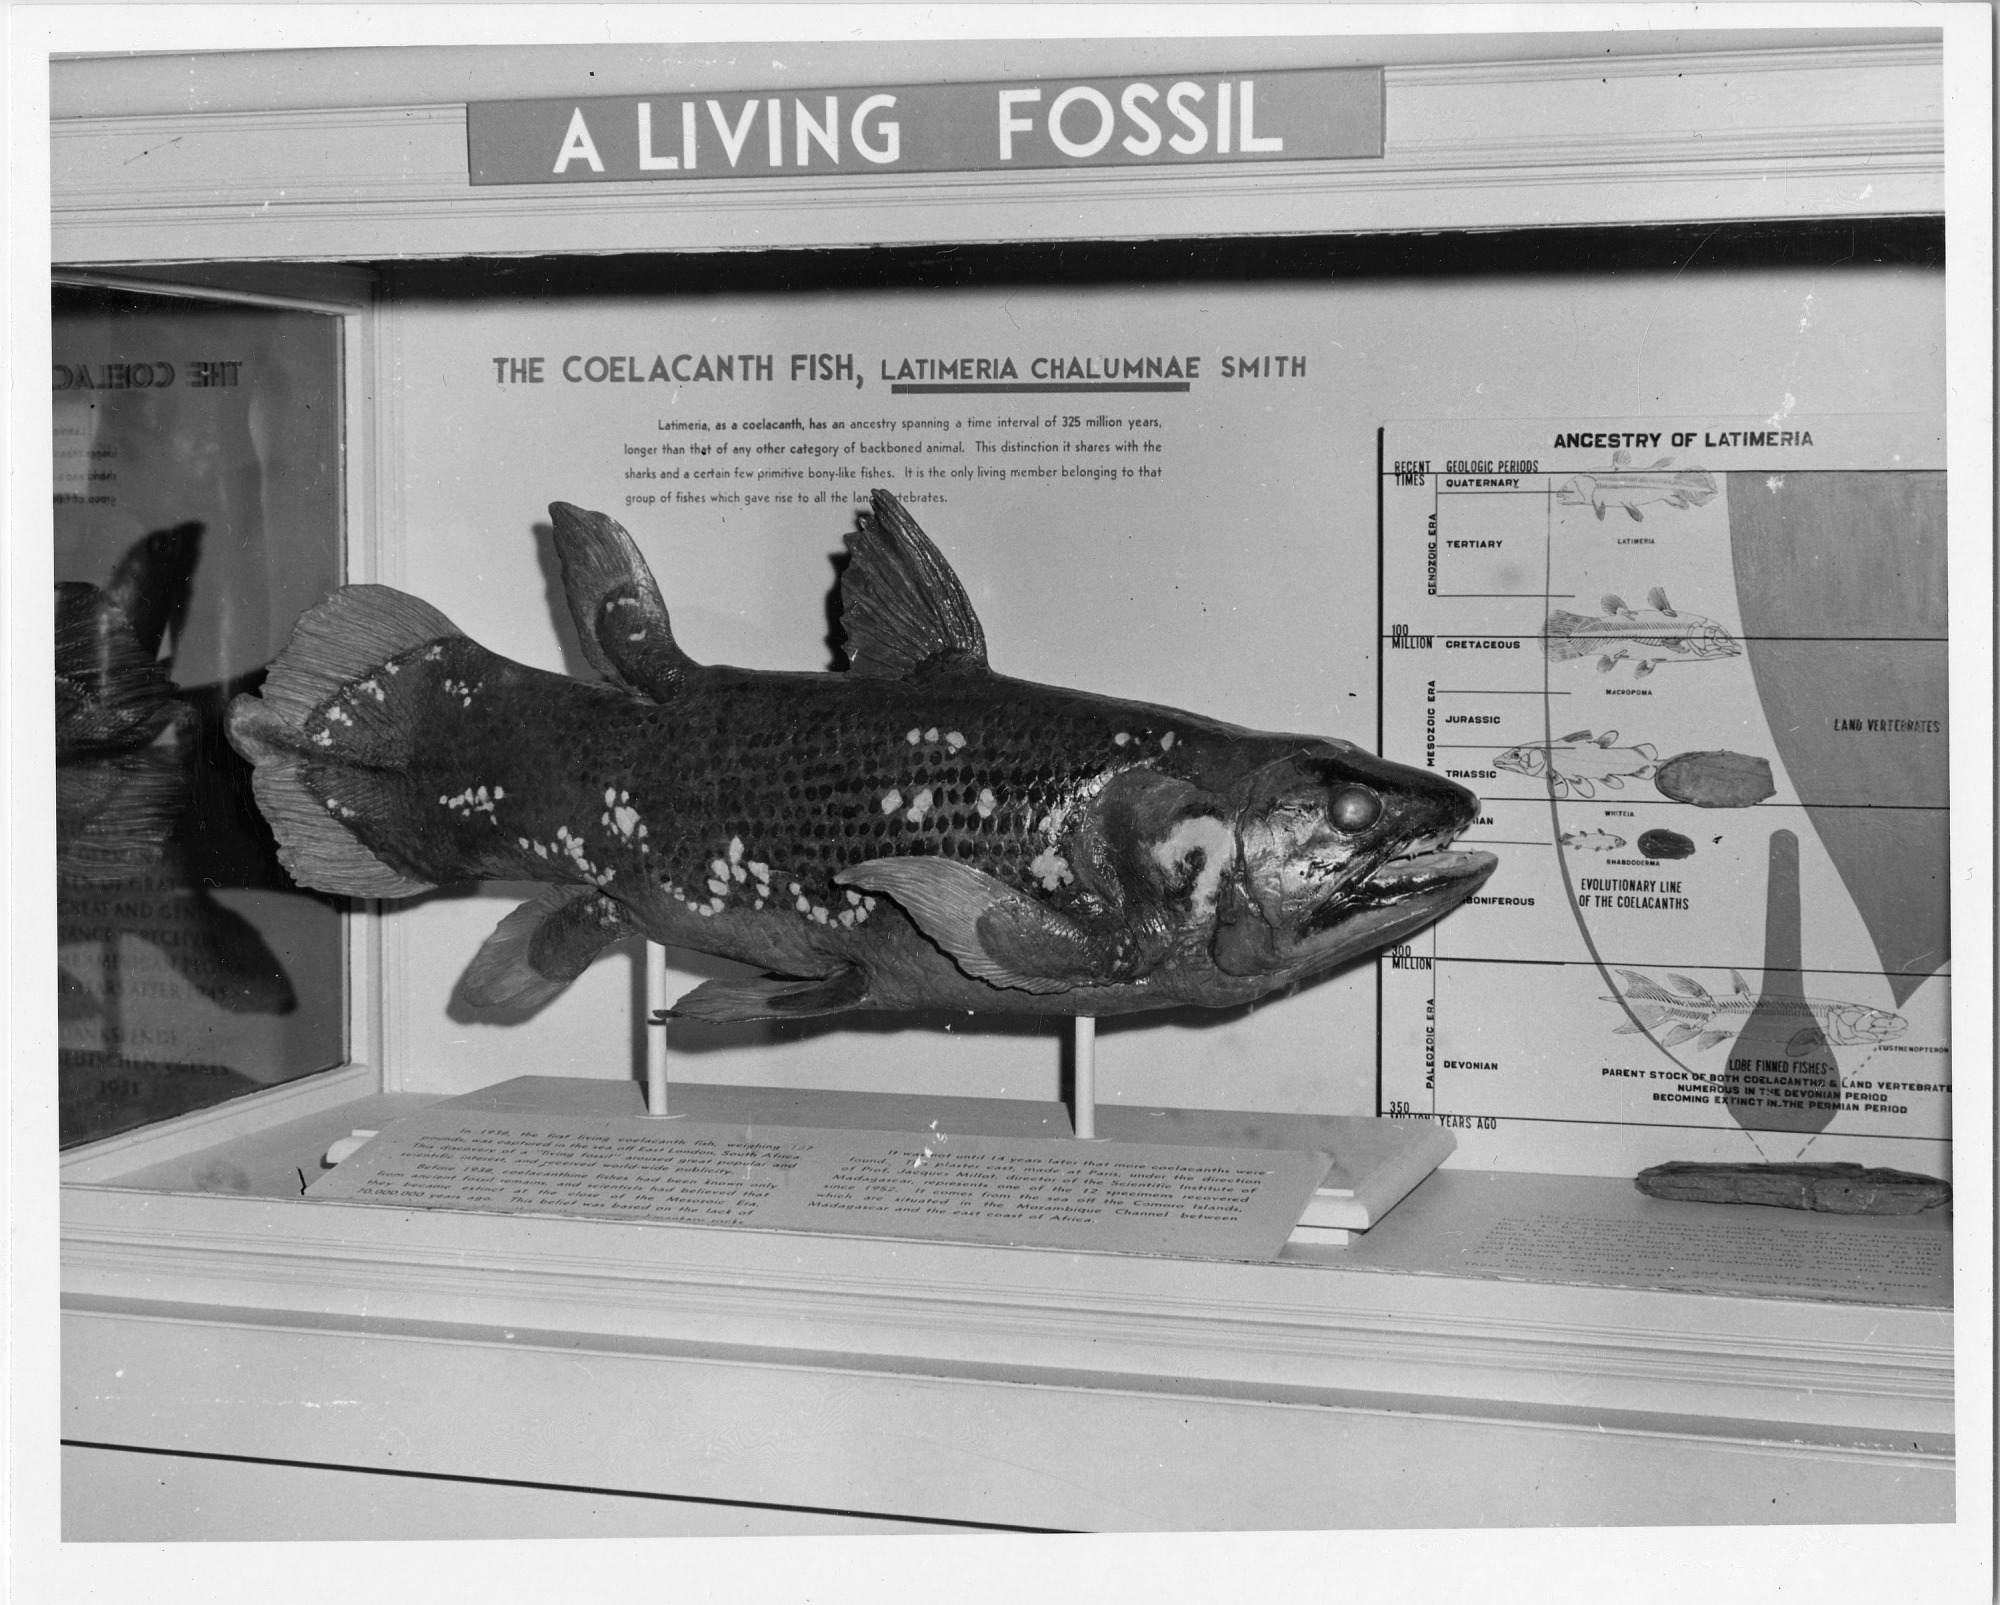 Aug 20 Coelacanth Fish, NMNH